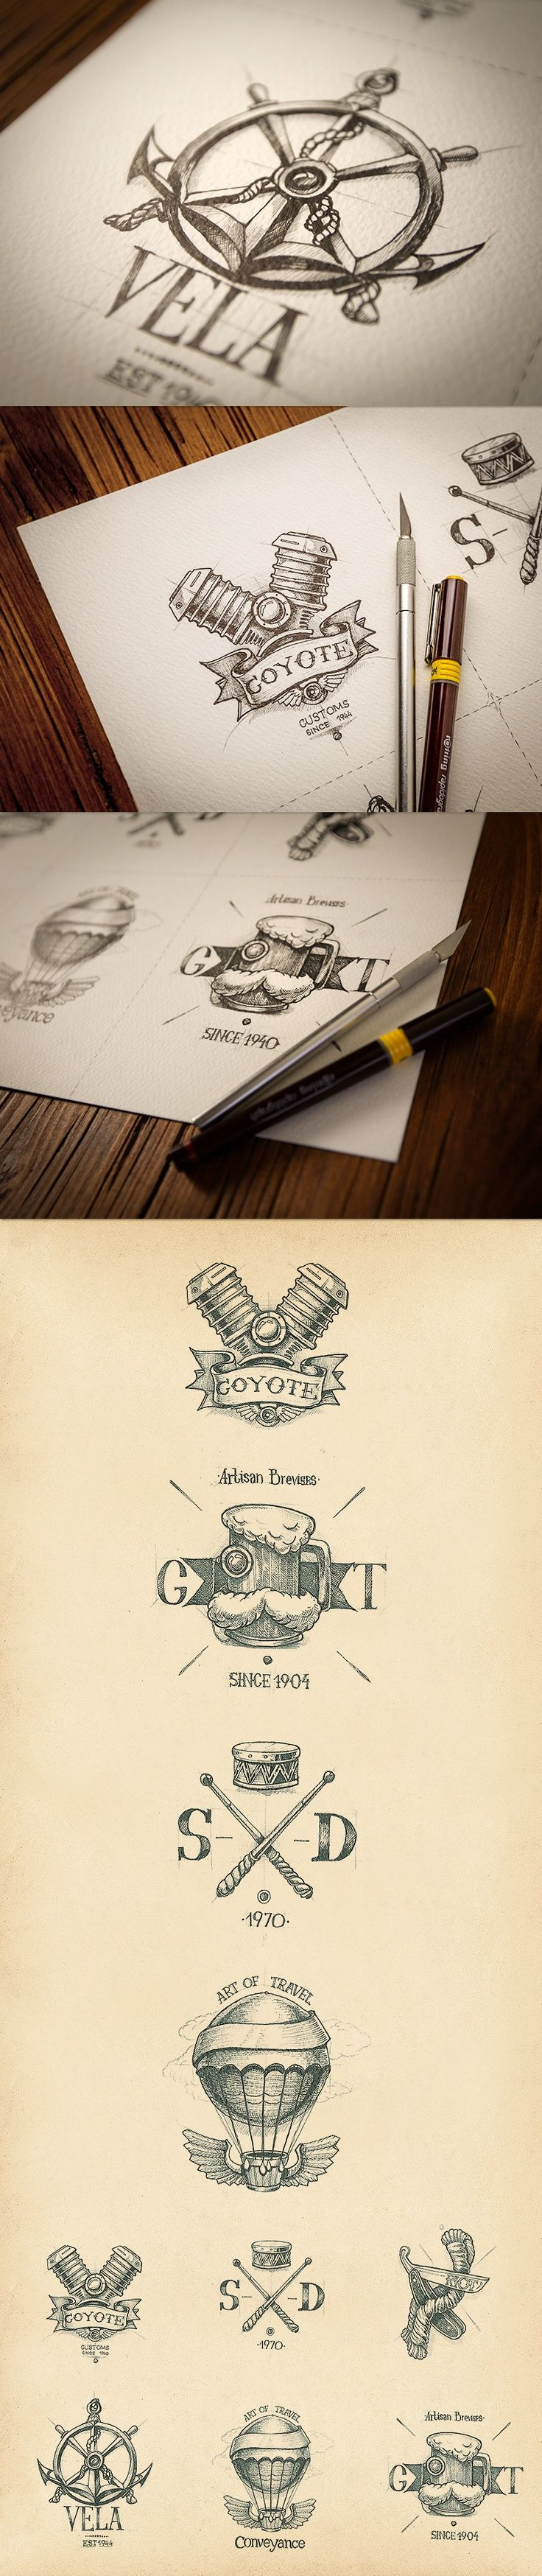 The best images about logos on pinterest